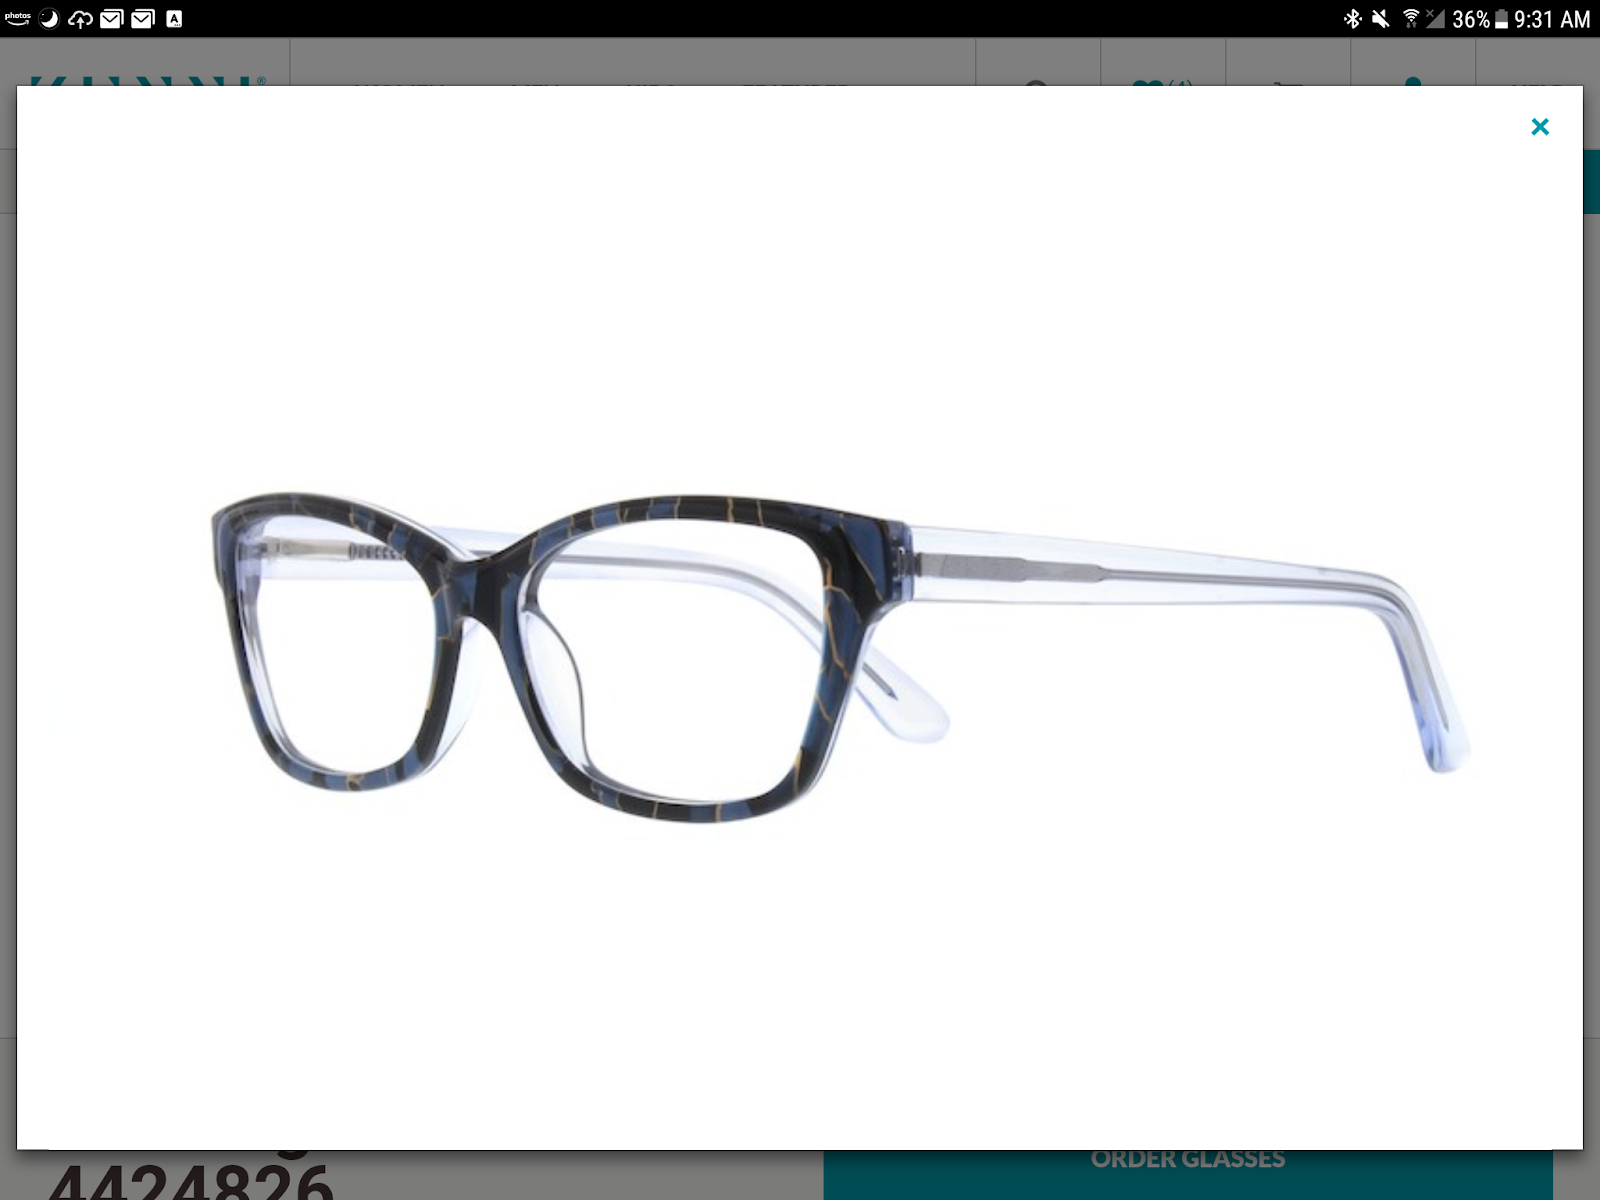 277d95bde9d Living Richly In Retirement  Ordering Glasses Online-My Review Of ...